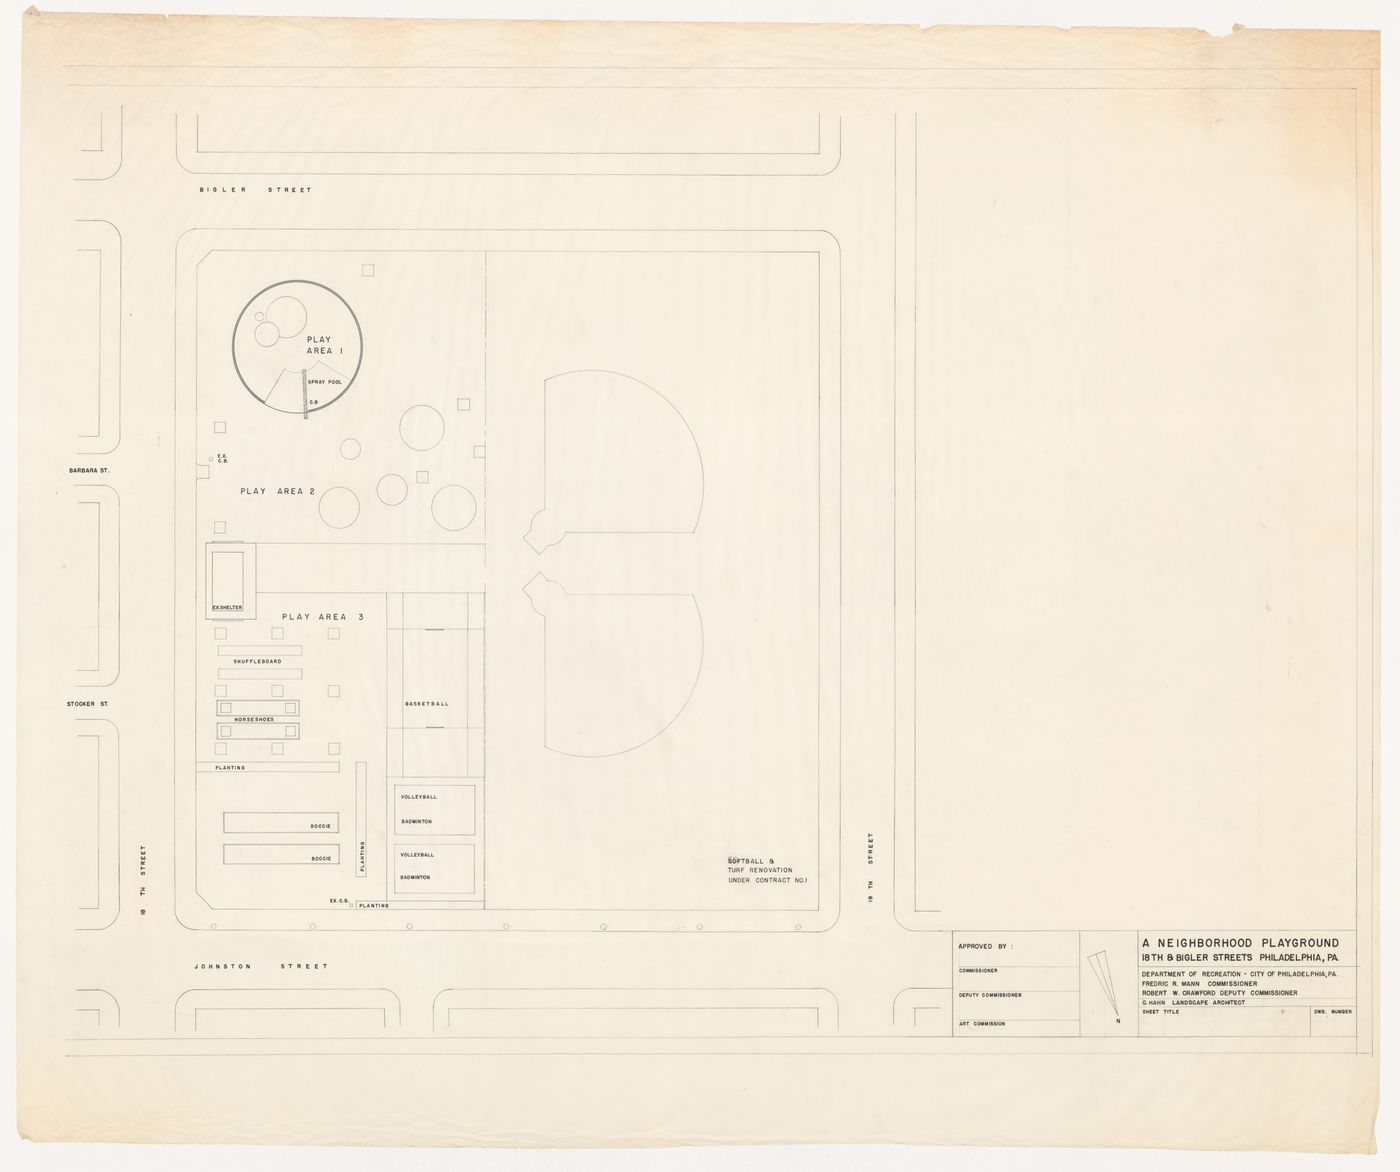 Site plan for recreational area at 18th and Bigler Streets, Philadelphia, Pennsylvania